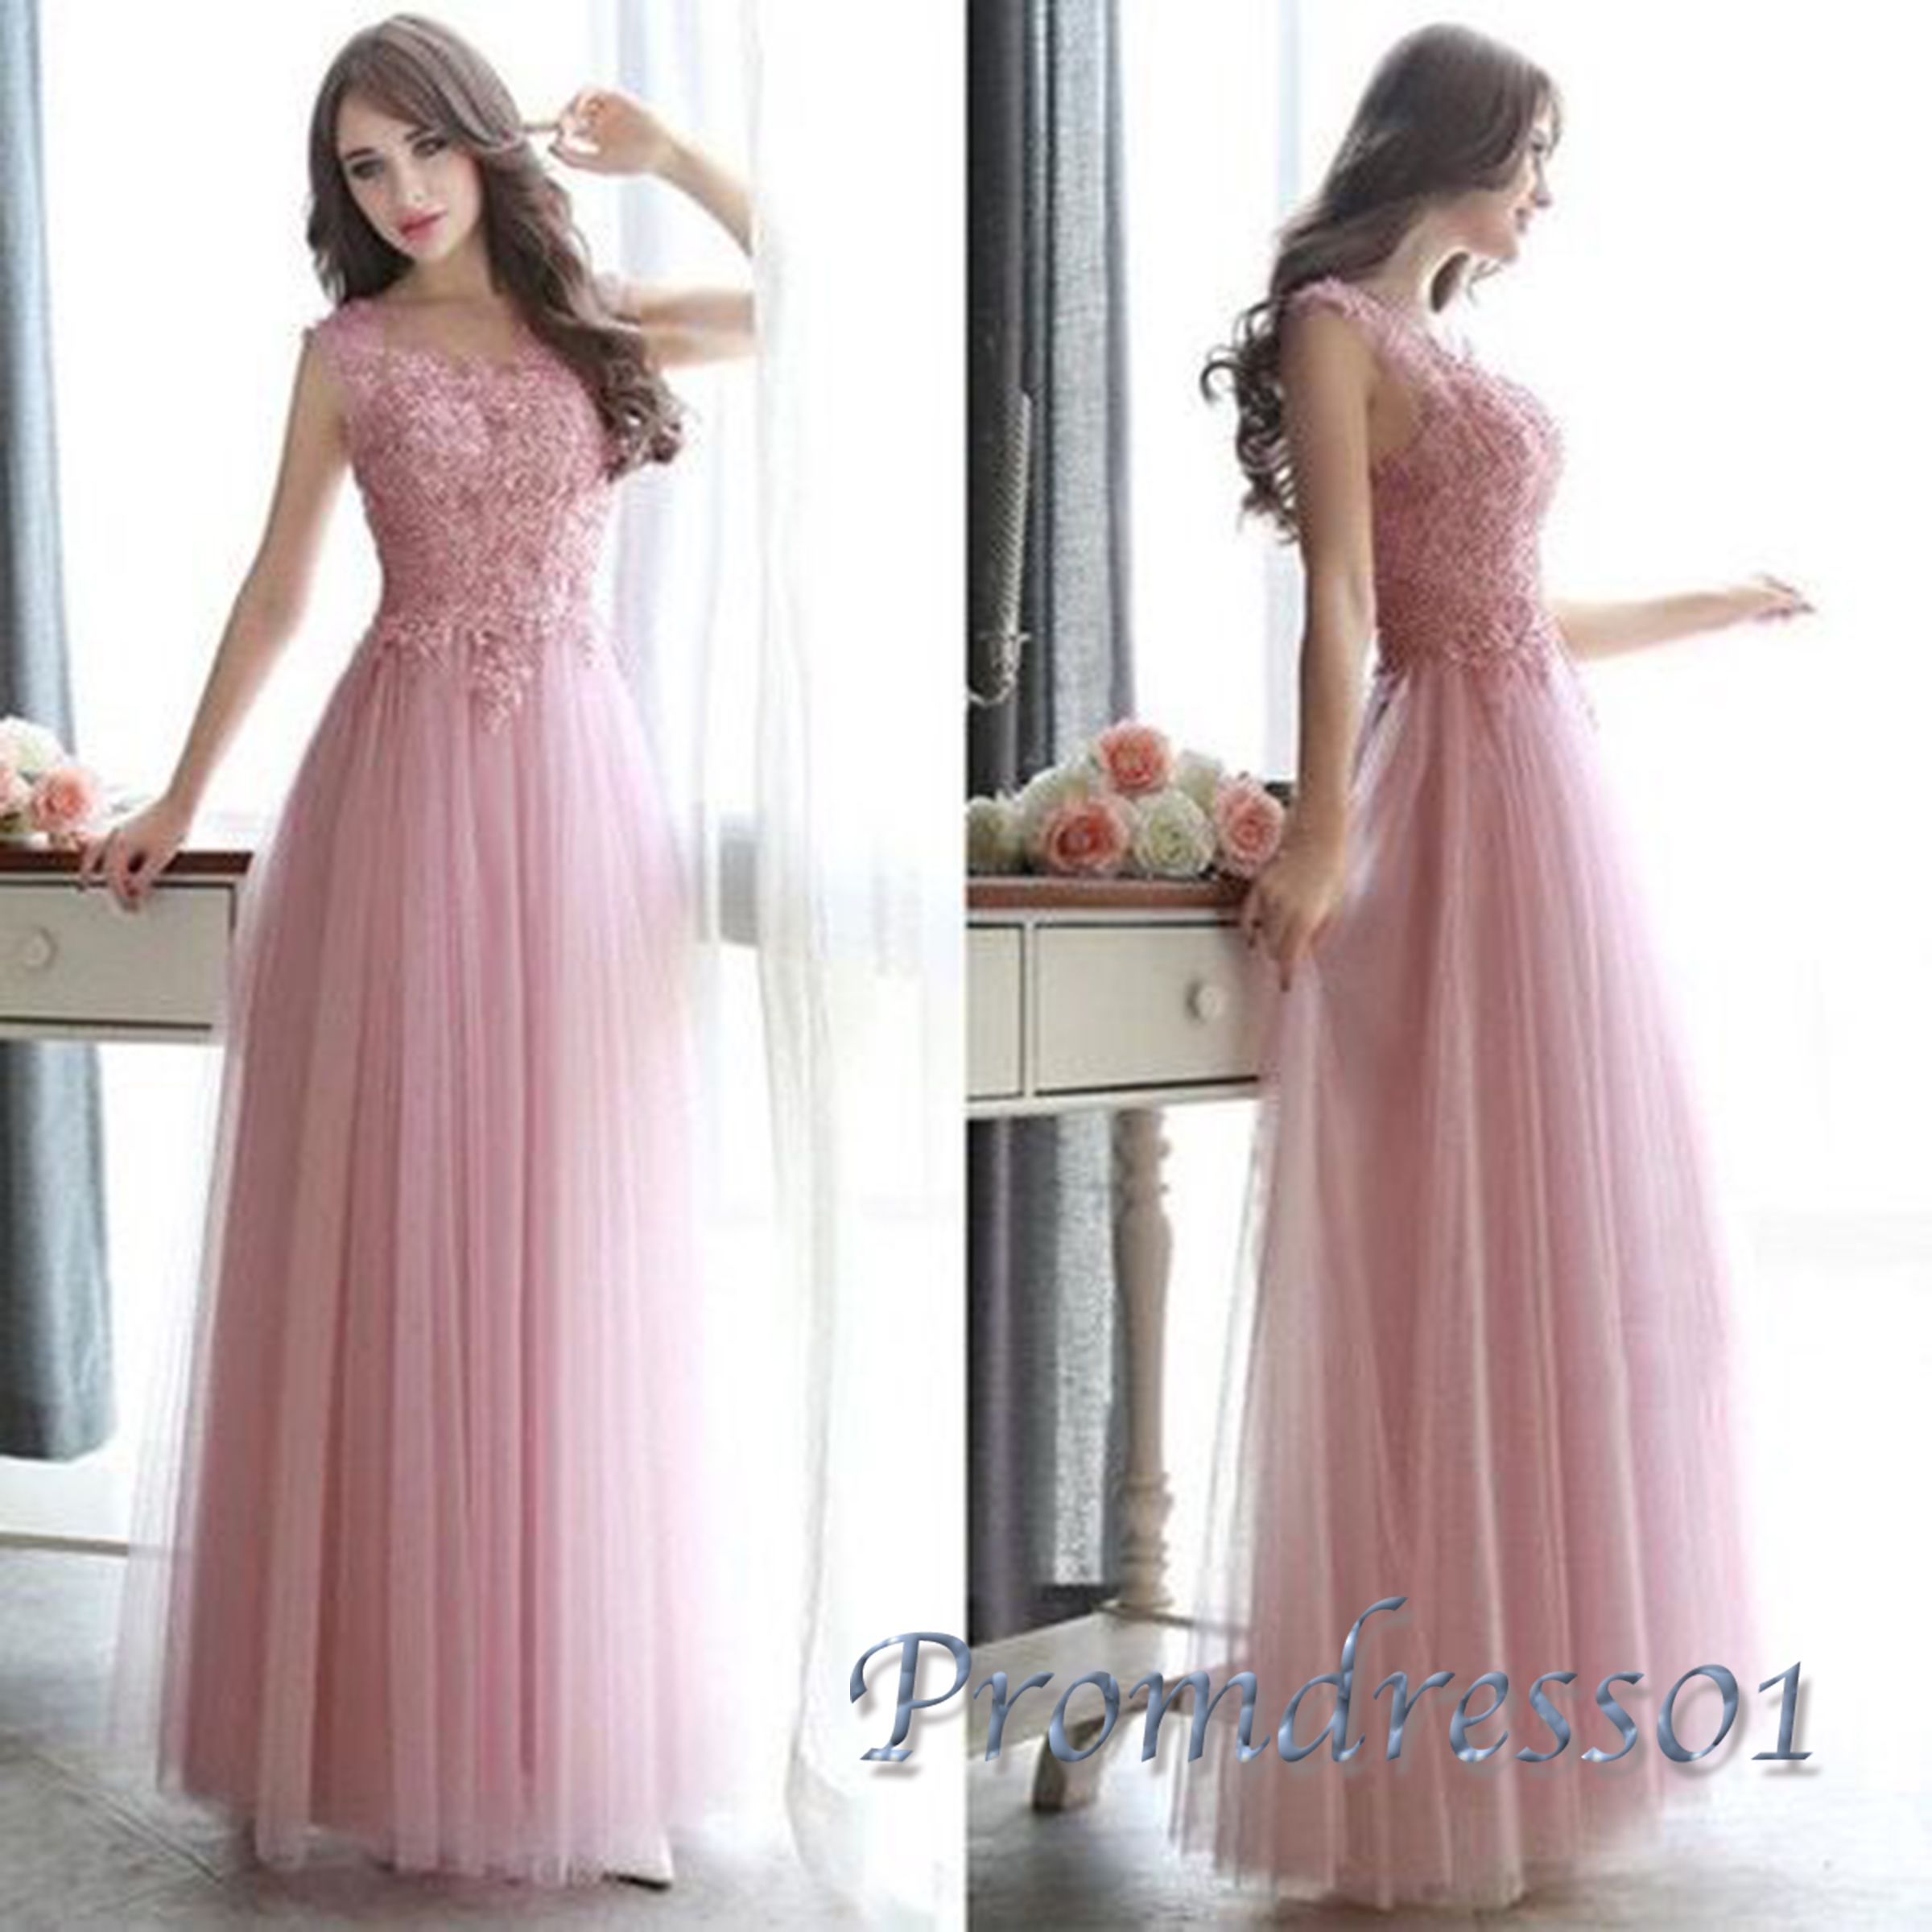 Cute pink lace u tulle long prom dress with beautiful top details